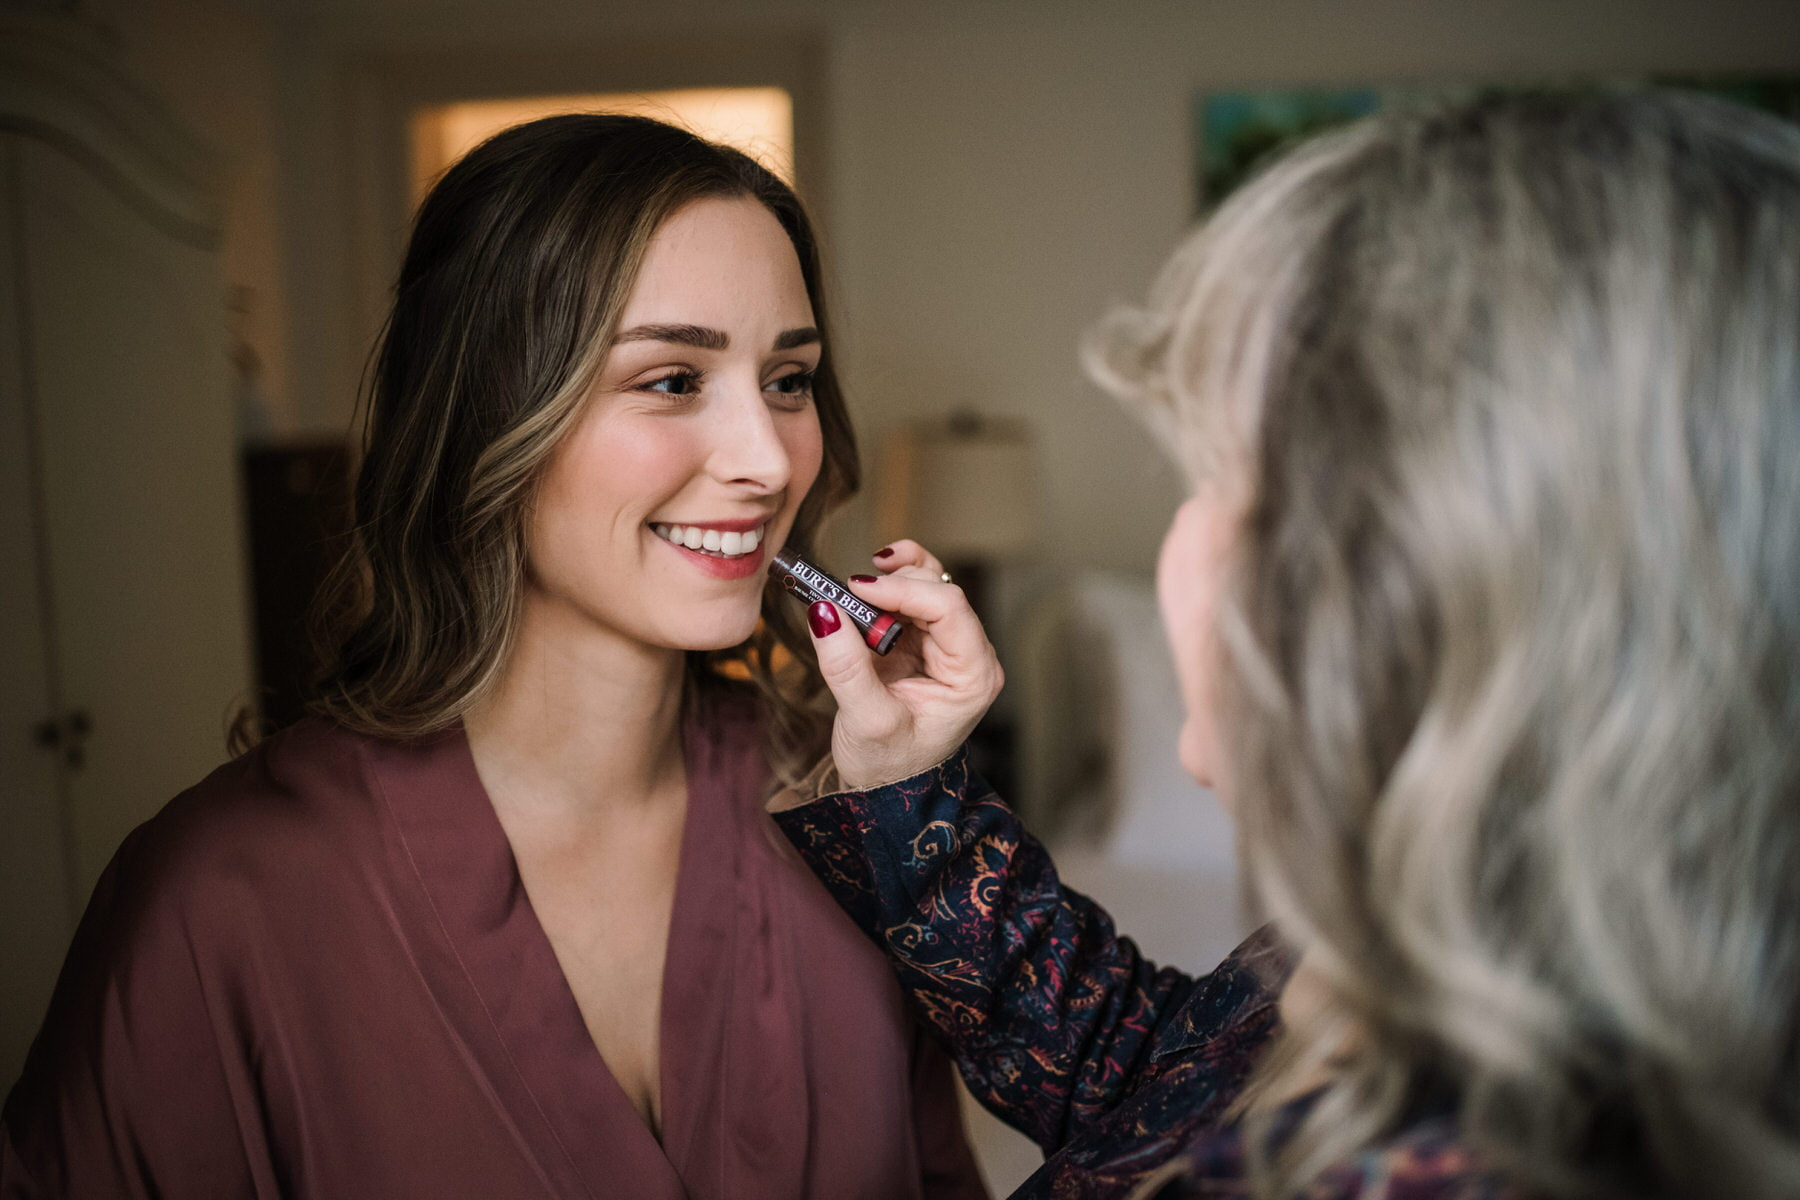 Burts Bees Lipstick at New Forest Micro Wedding